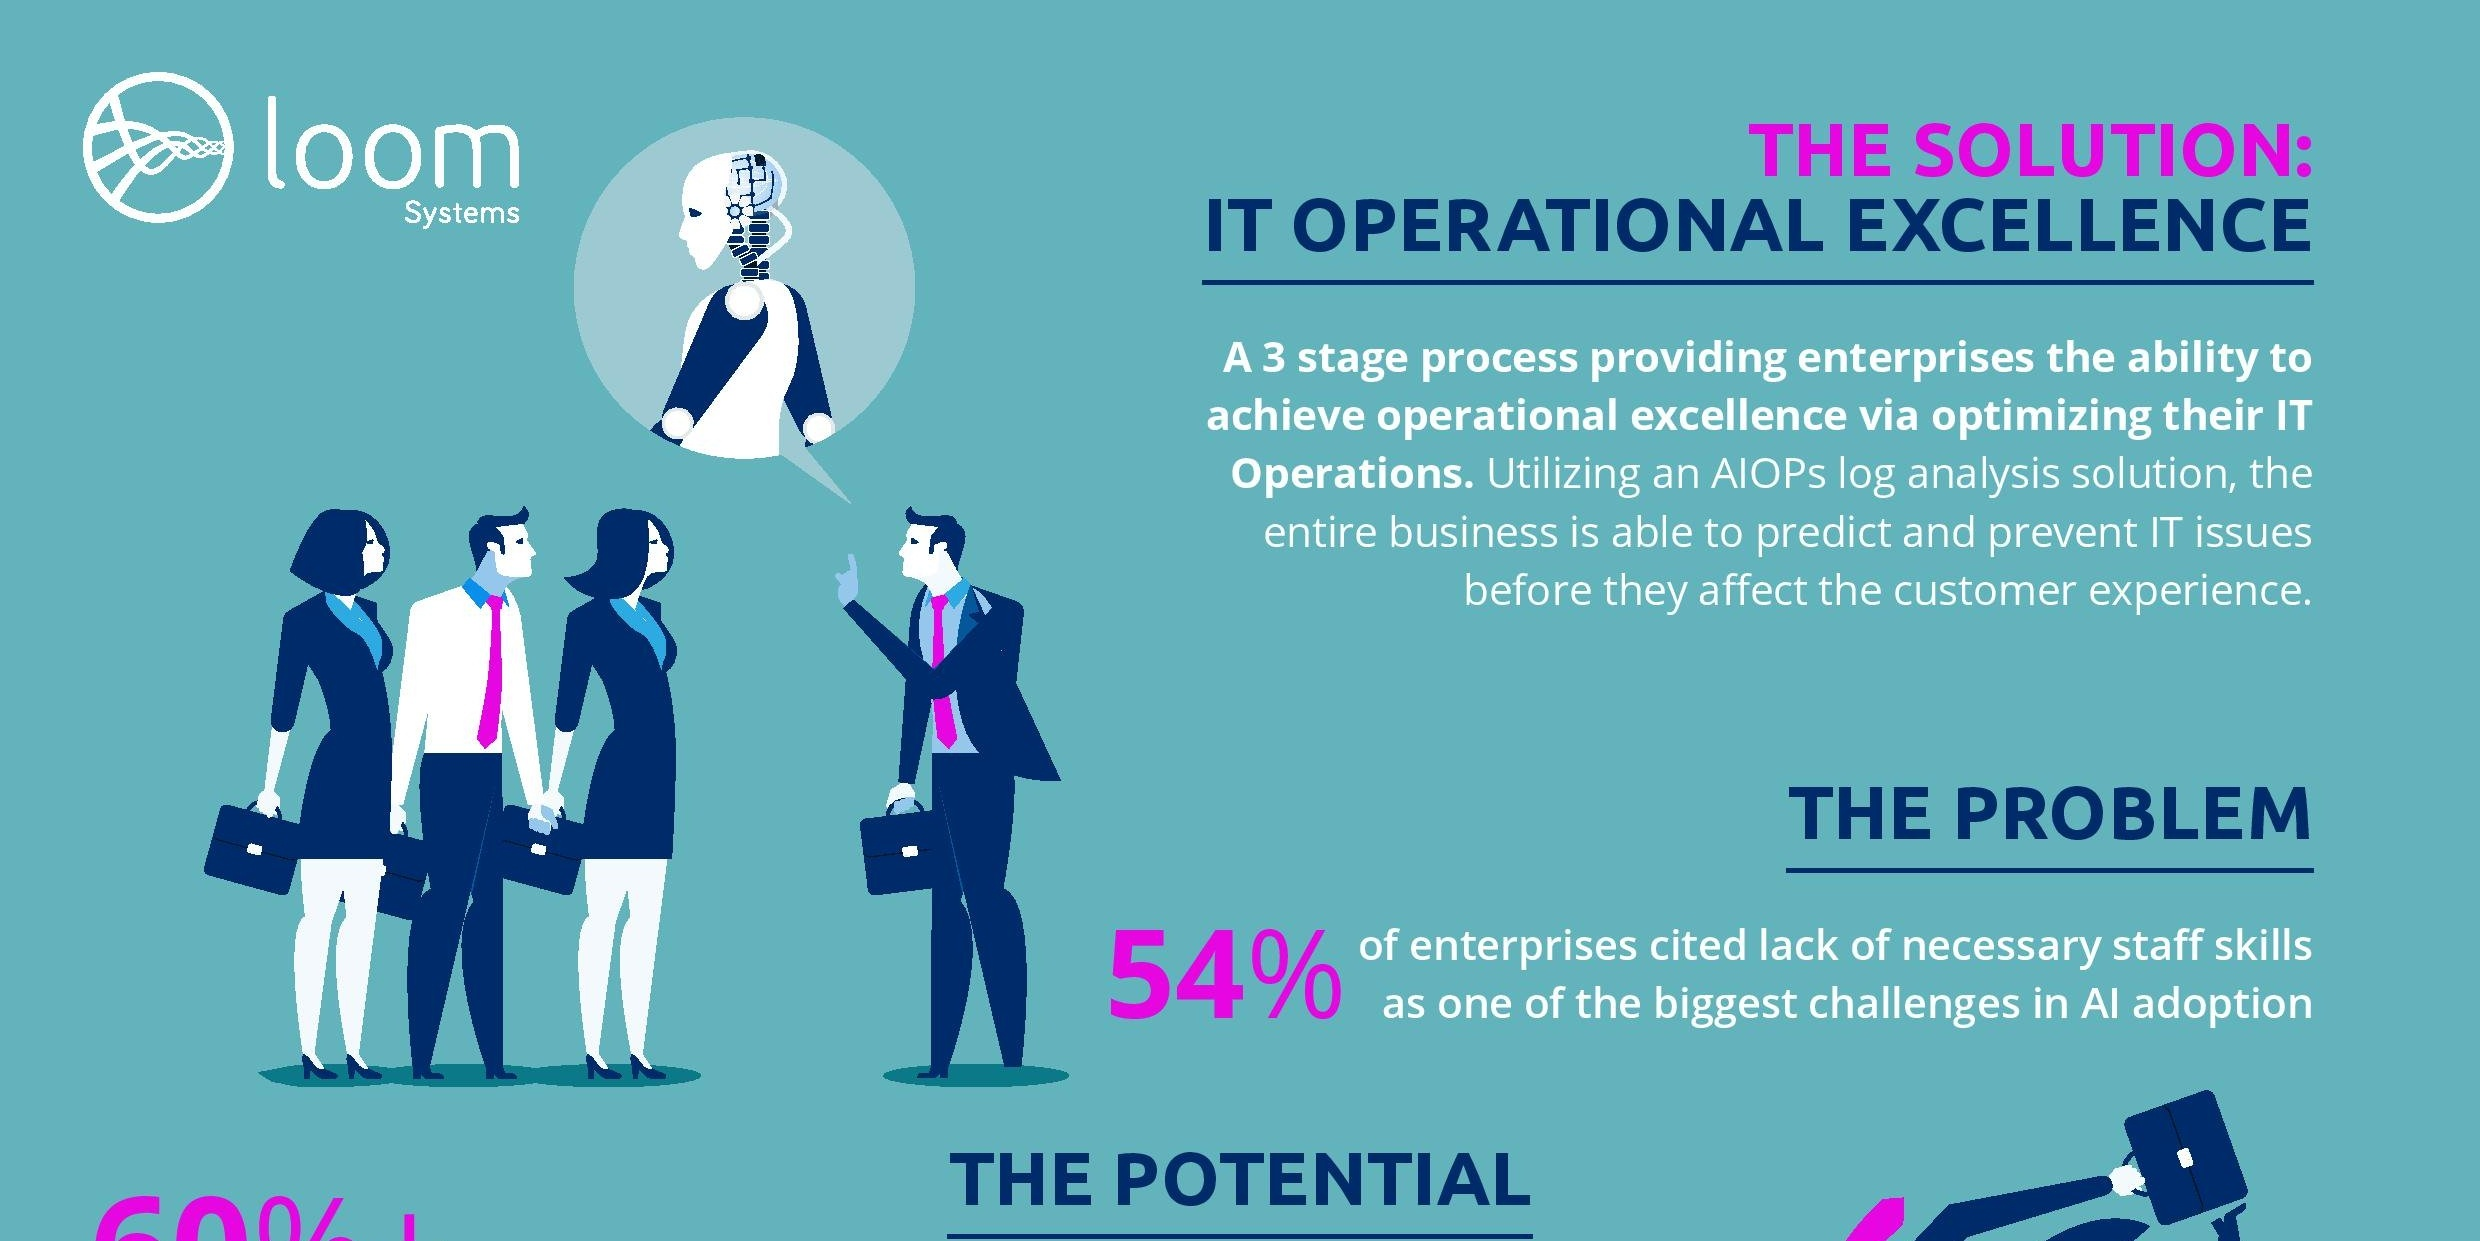 [INFOGRAPHIC]: The Naked Truth- AI Adoption isn't easy as it seems